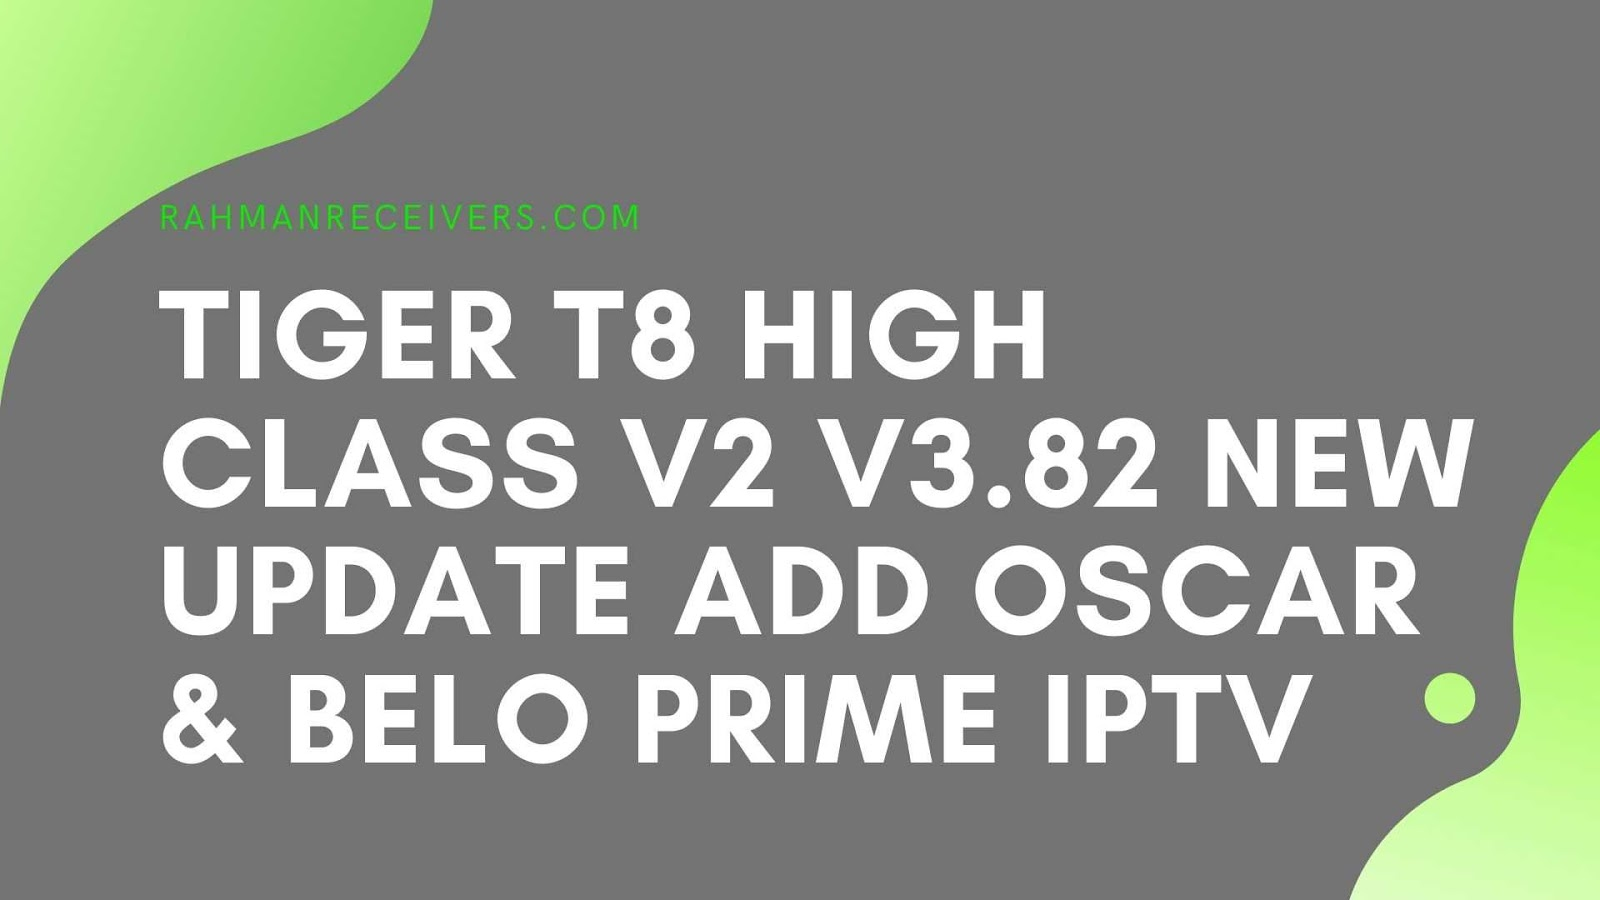 TIGER T8 HIGH CLASS V2 V3.82 NEW UPDATE ADD OSCAR & BELO PRIME IPTV 13 APRIL 2020